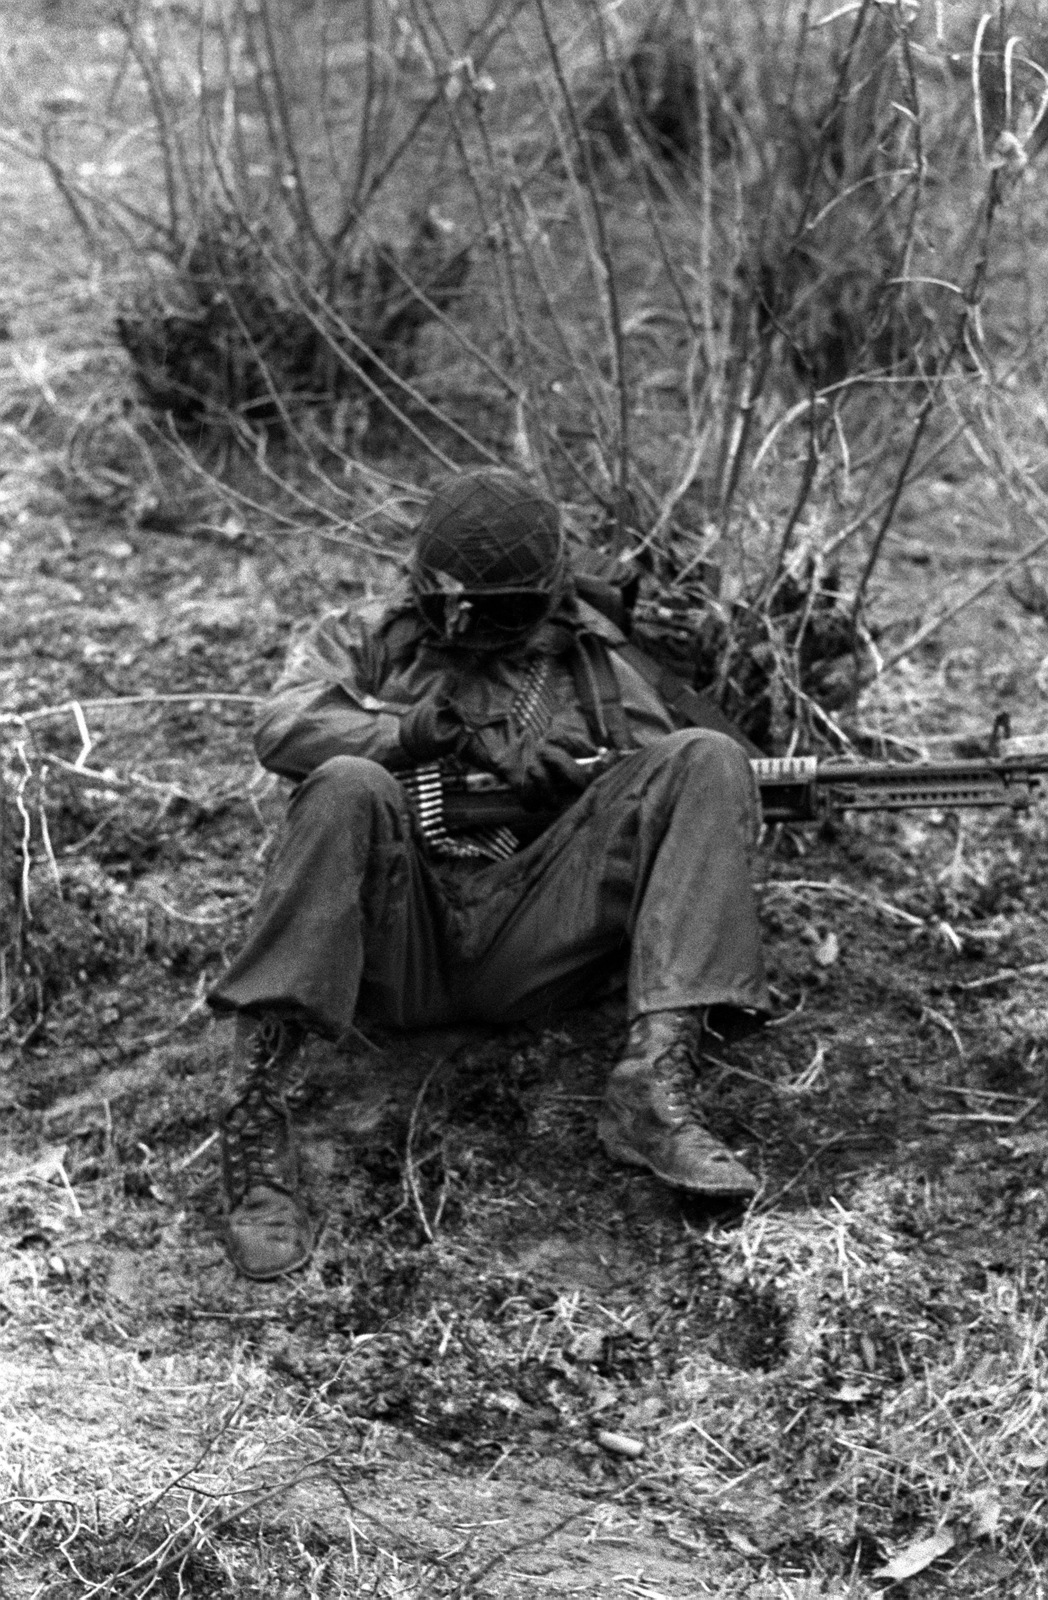 PVT Paul Perkins of the Combat Support Co., 1ST Bn., 21st Inf., 25th Infantry Div., takes a nap while awaiting the word to move forward in a counterattack against the Orange Forces during the height of the joint South Korea/U.S. training exercise Team Spirit '82